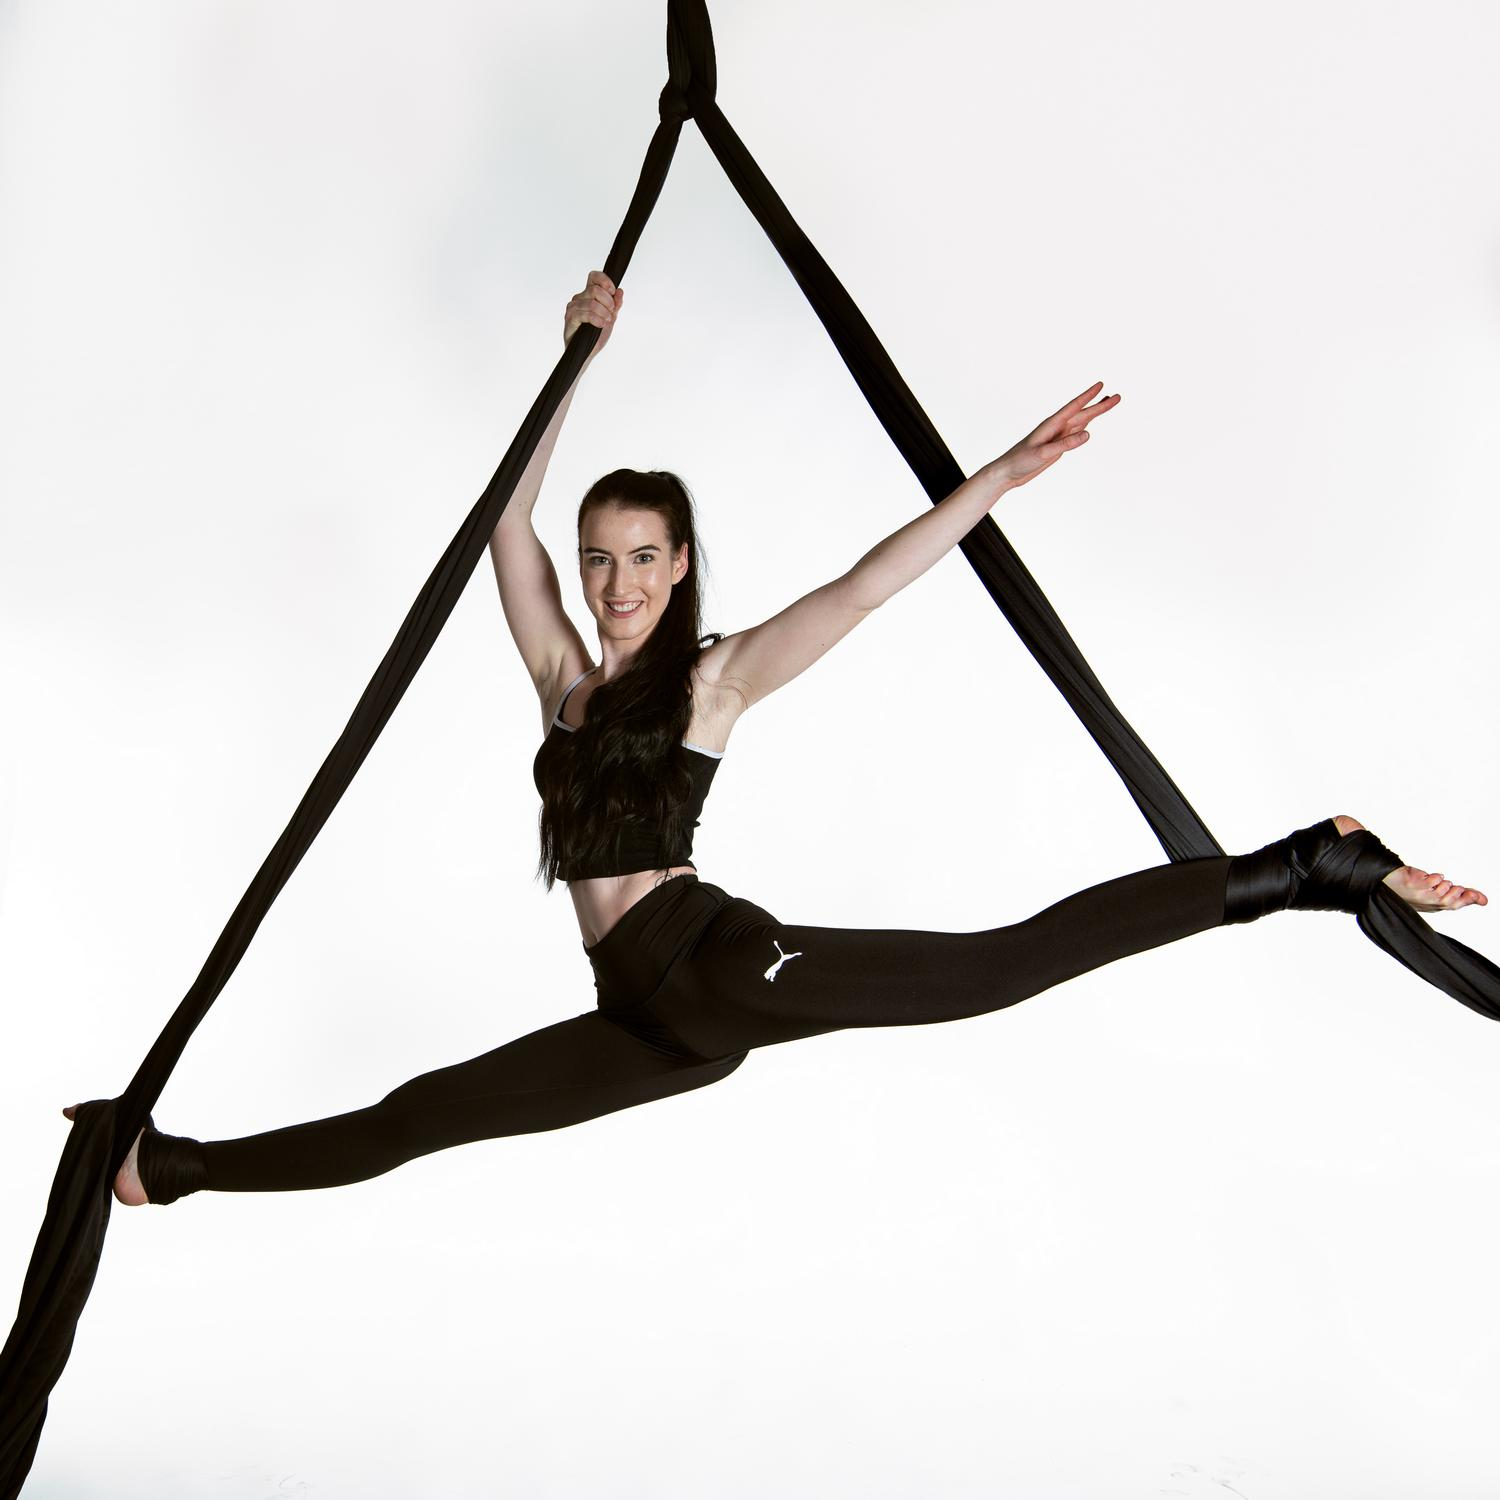 AERIAL SILK & HOOP TEENS & ADULTS